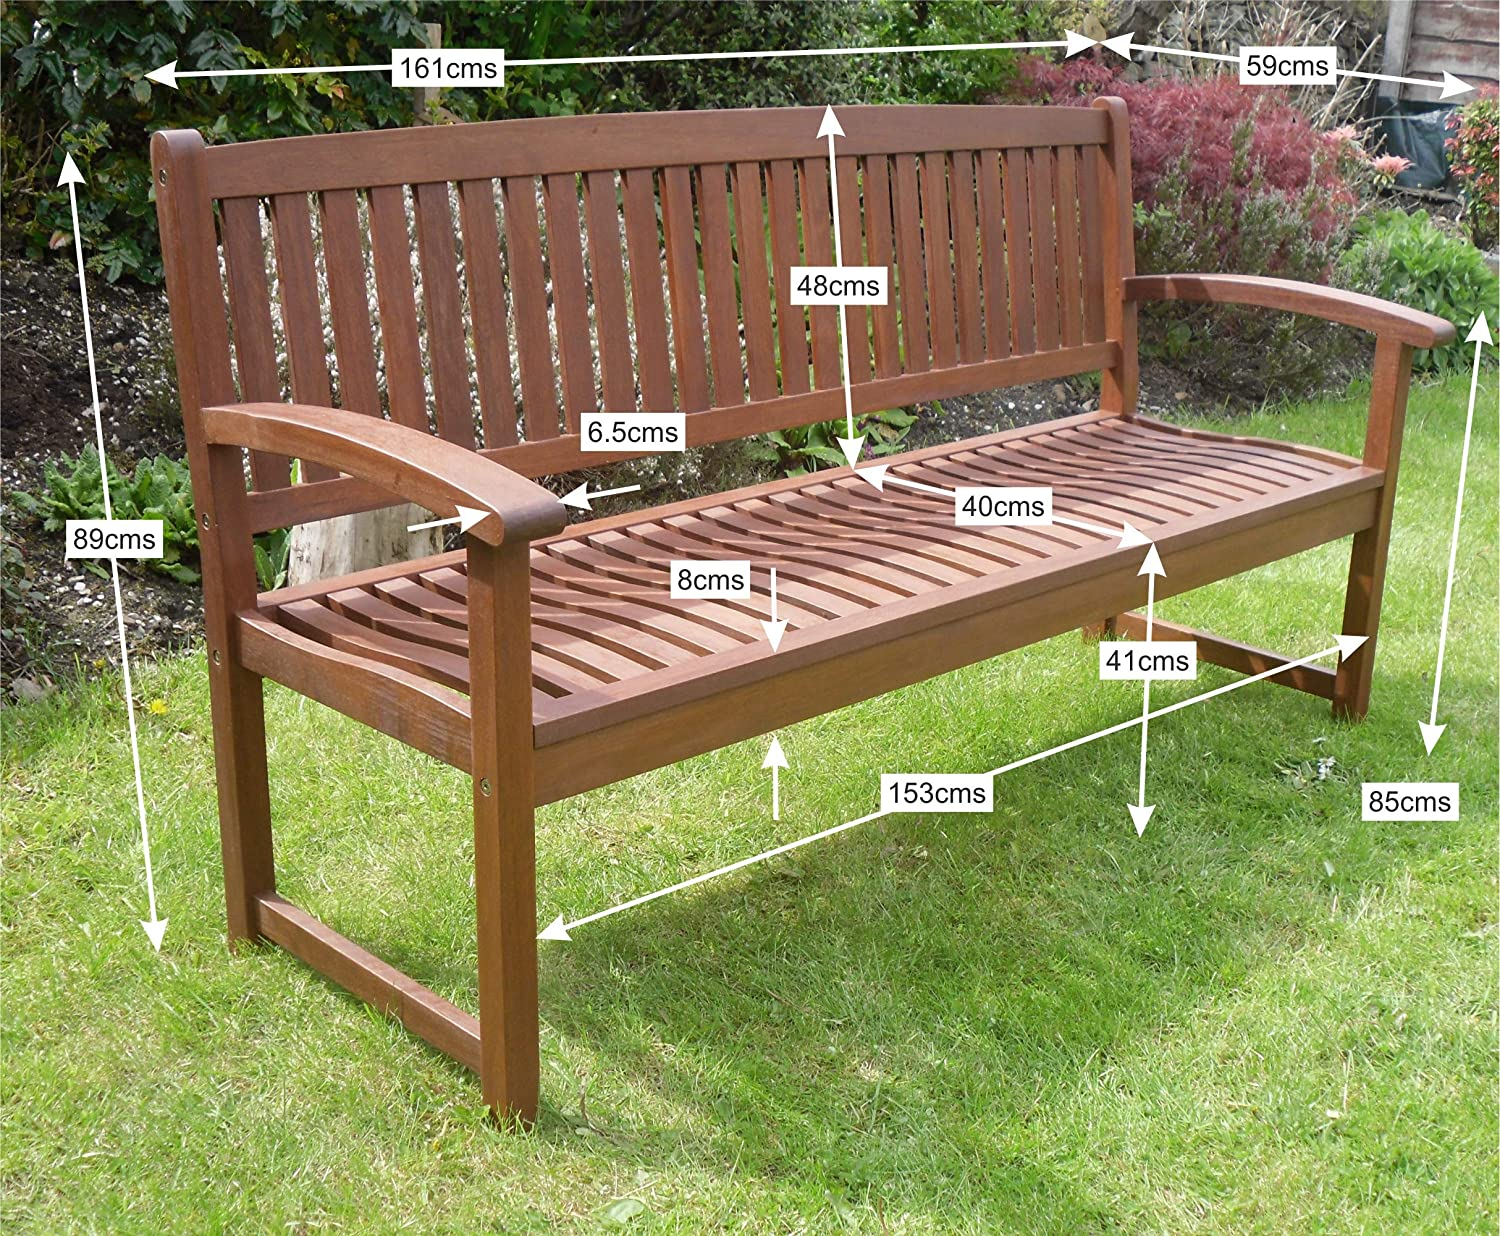 Henley Hardwood 3 Seat Garden Bench Great Outdoor Furniture For Your Garden Or Patio Amazon Co Uk Kitchen Home